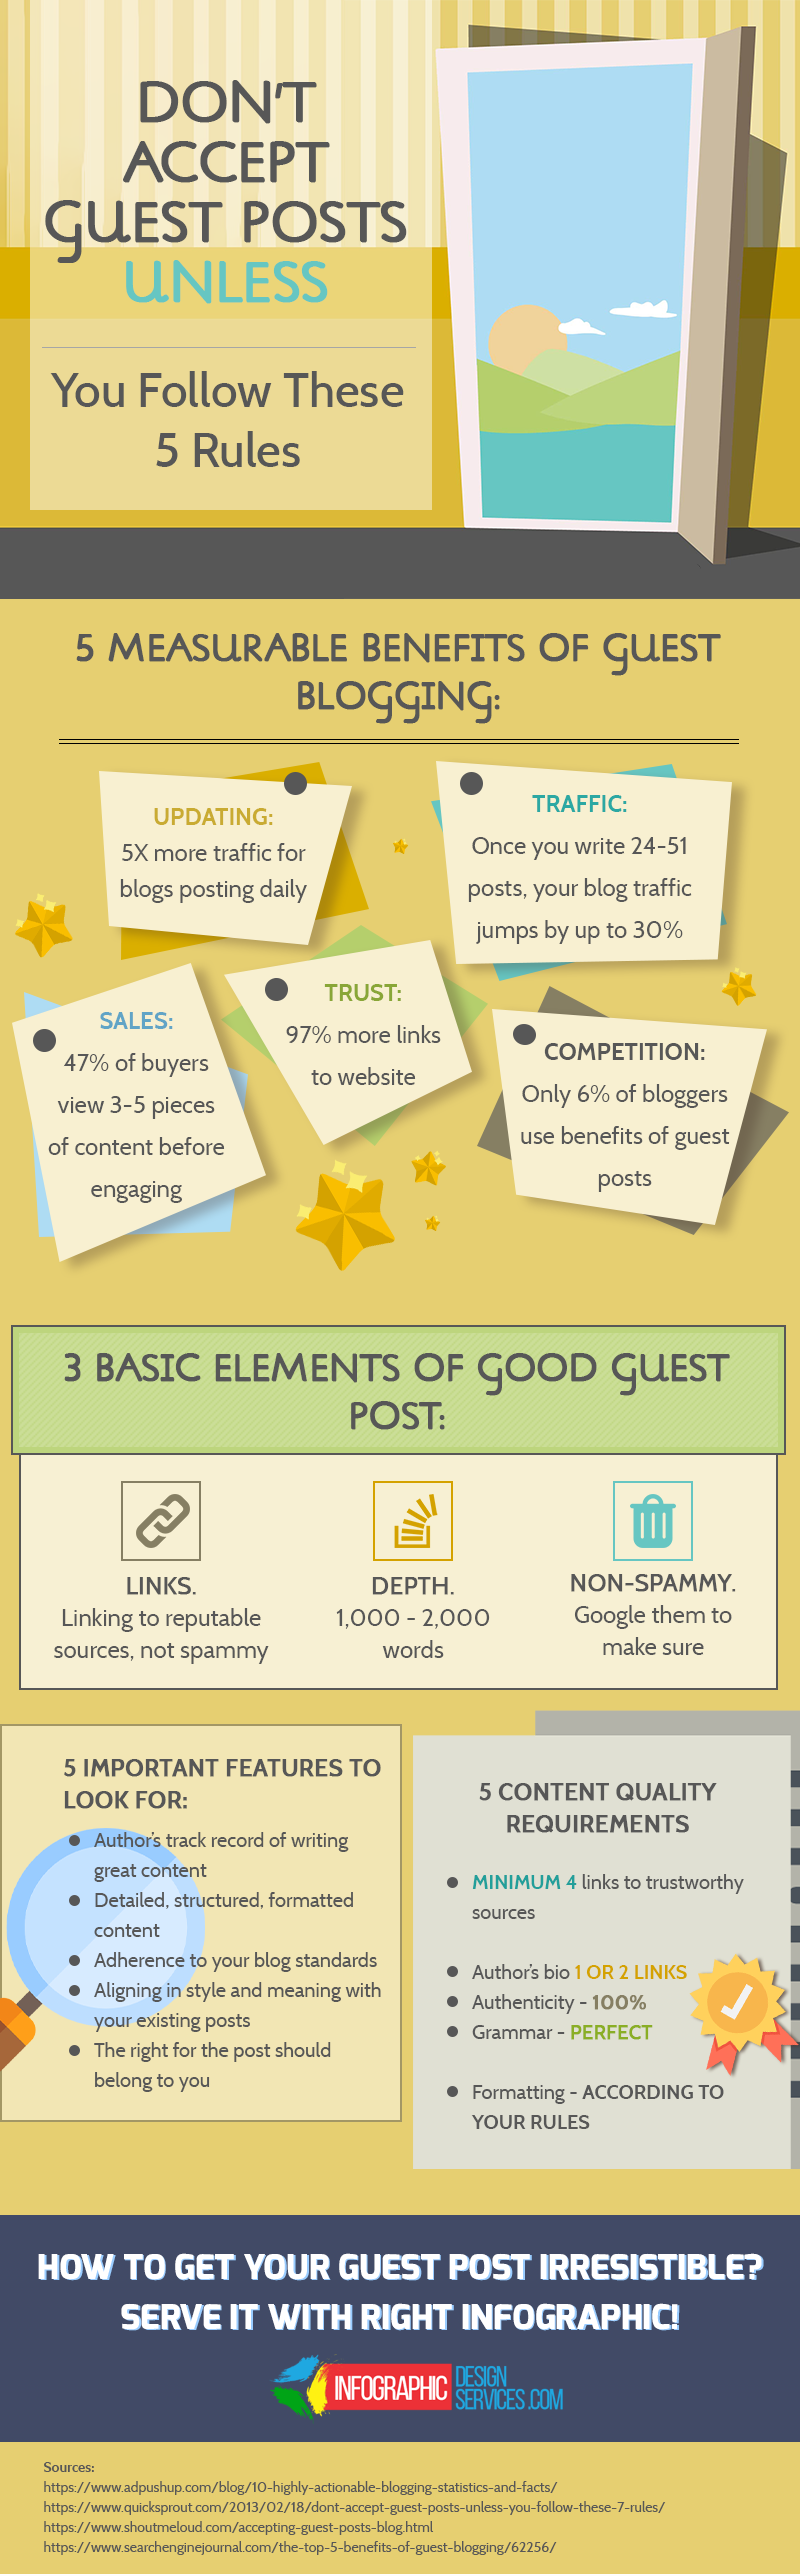 Don't Accept Guest Posts Unless You Follow These 5 Rules